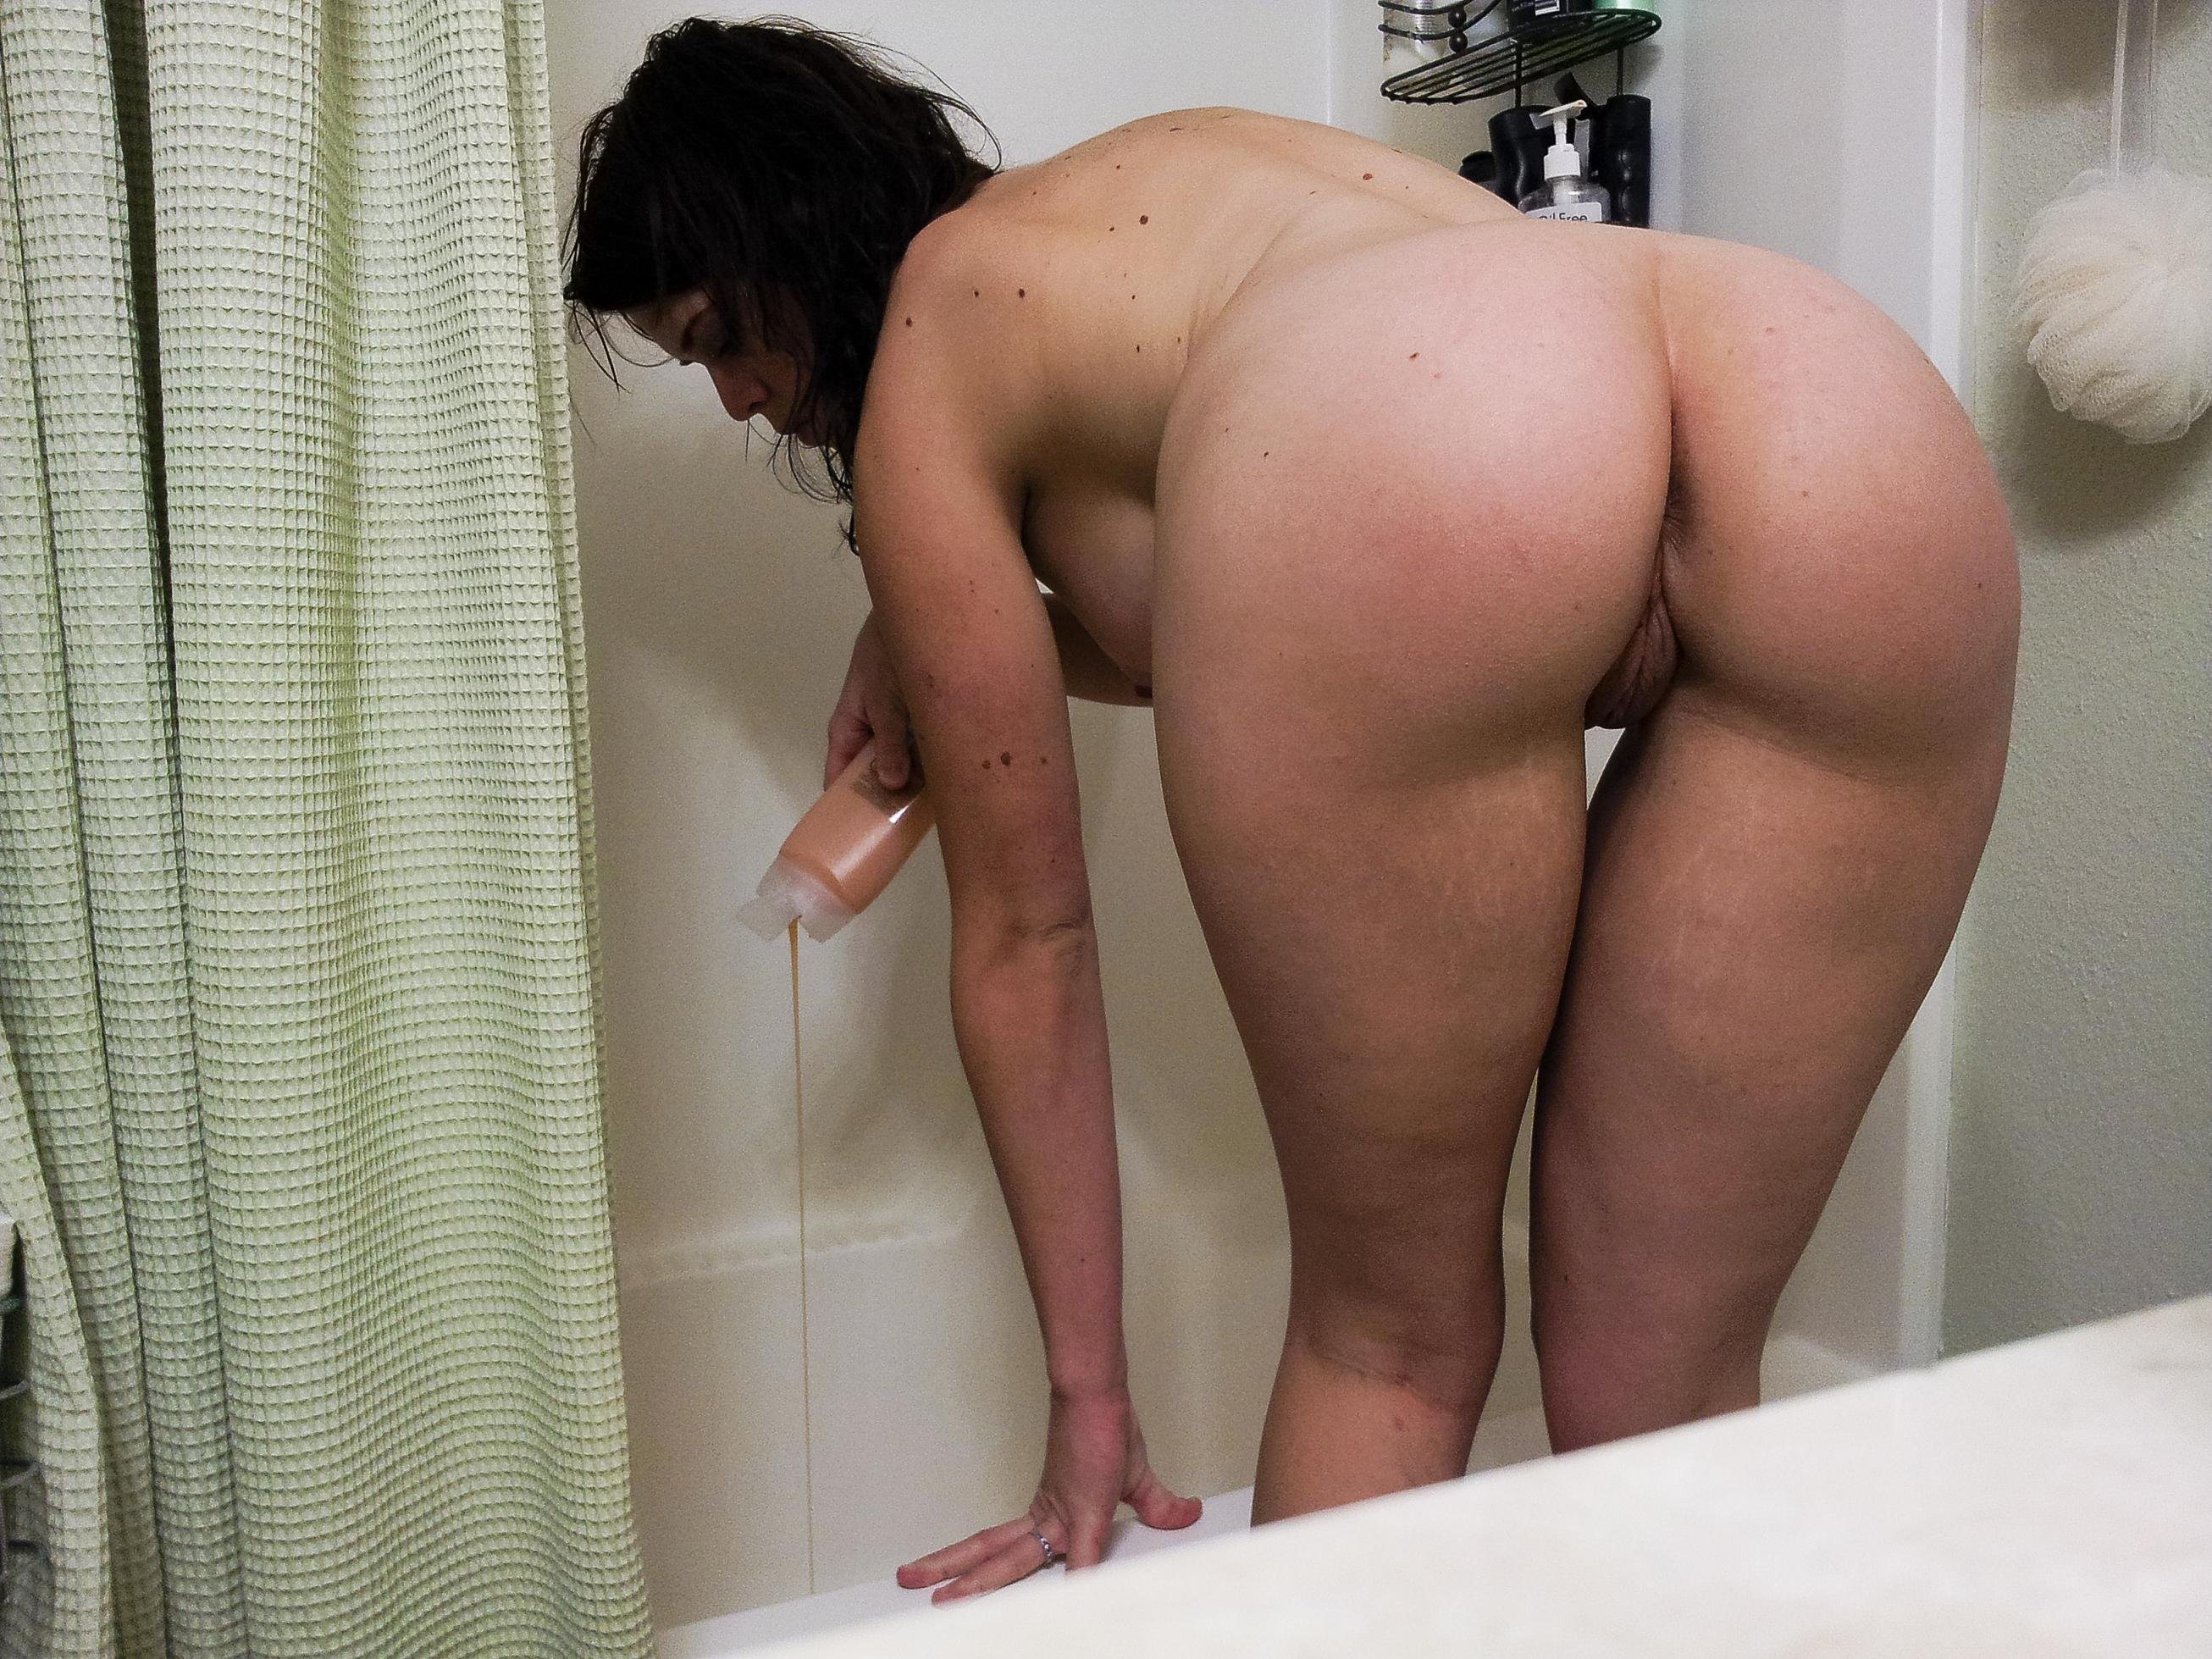 Submissive Wife Pictures Blonde Goddes